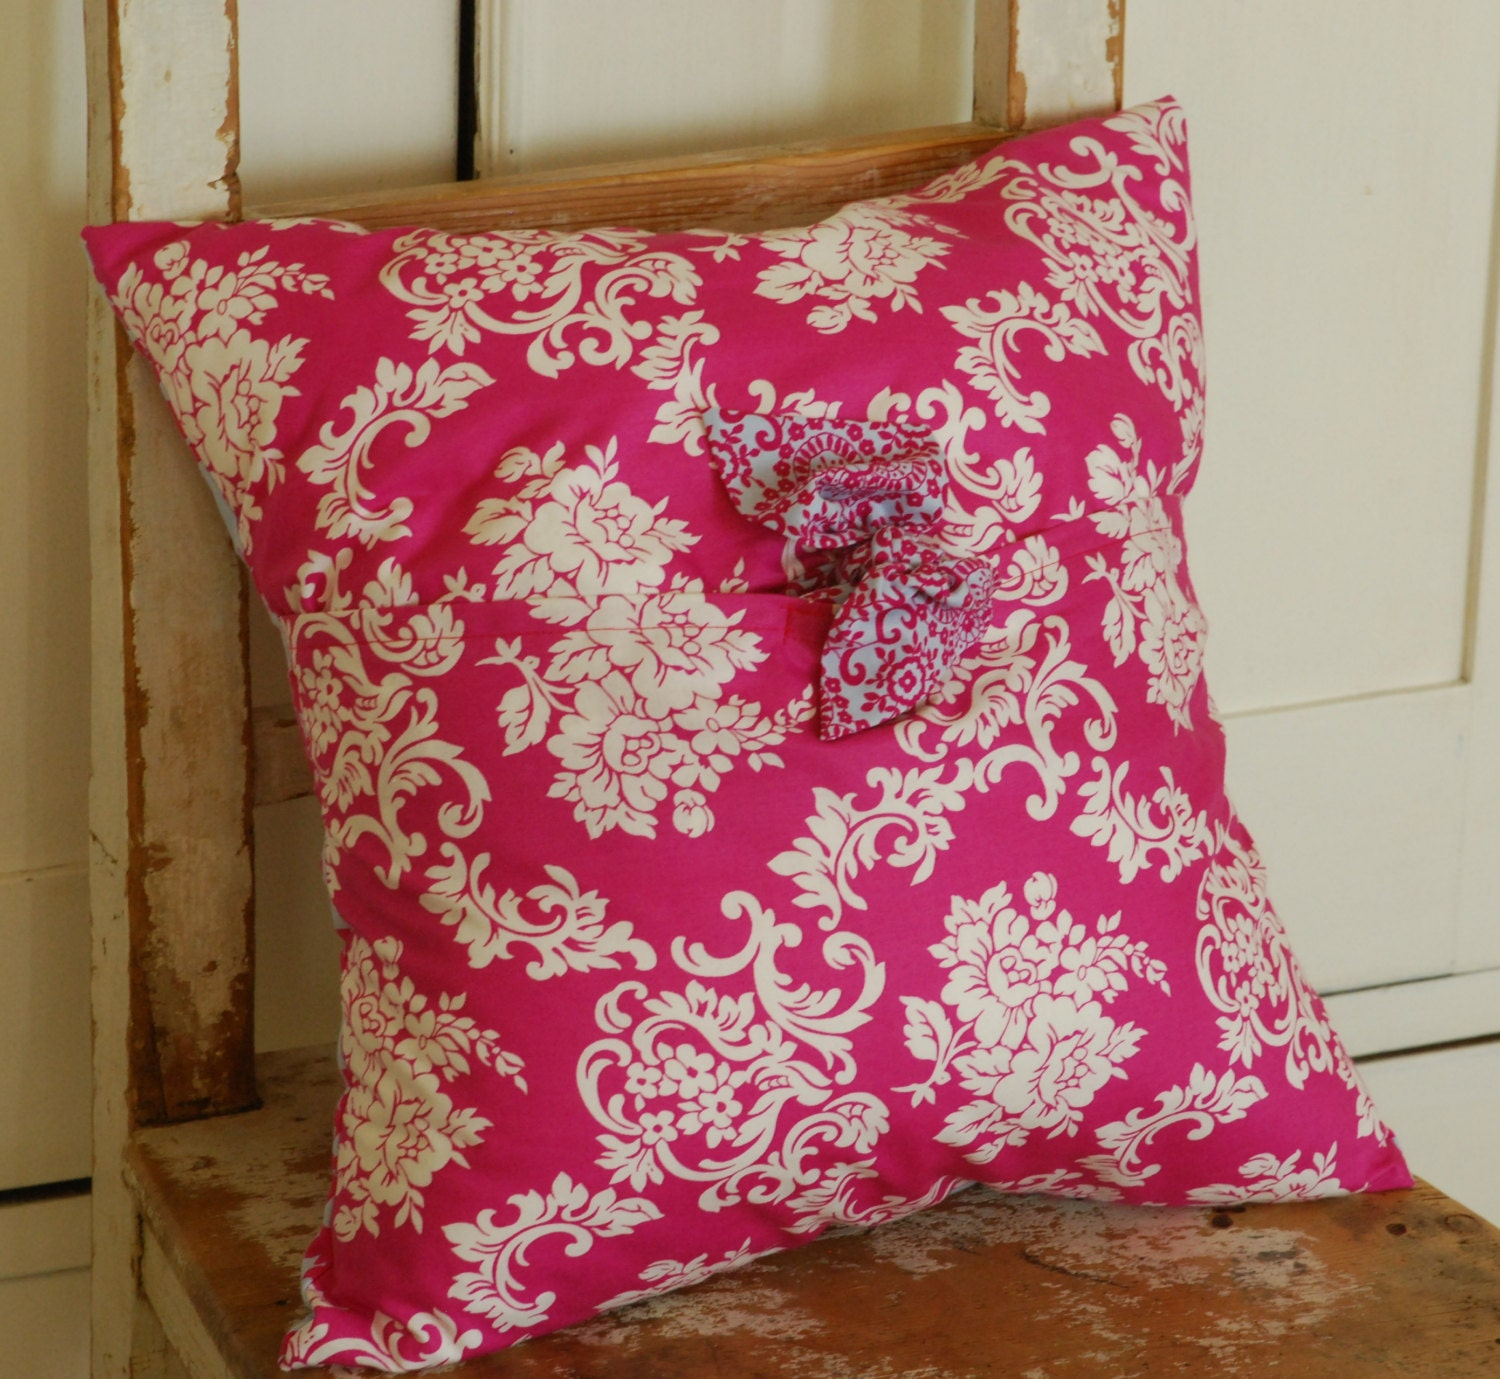 Etsy Shabby Chic Throw Pillows : Shabby Chic Pillow Cover Decorative Pillow by KenilworthPlace